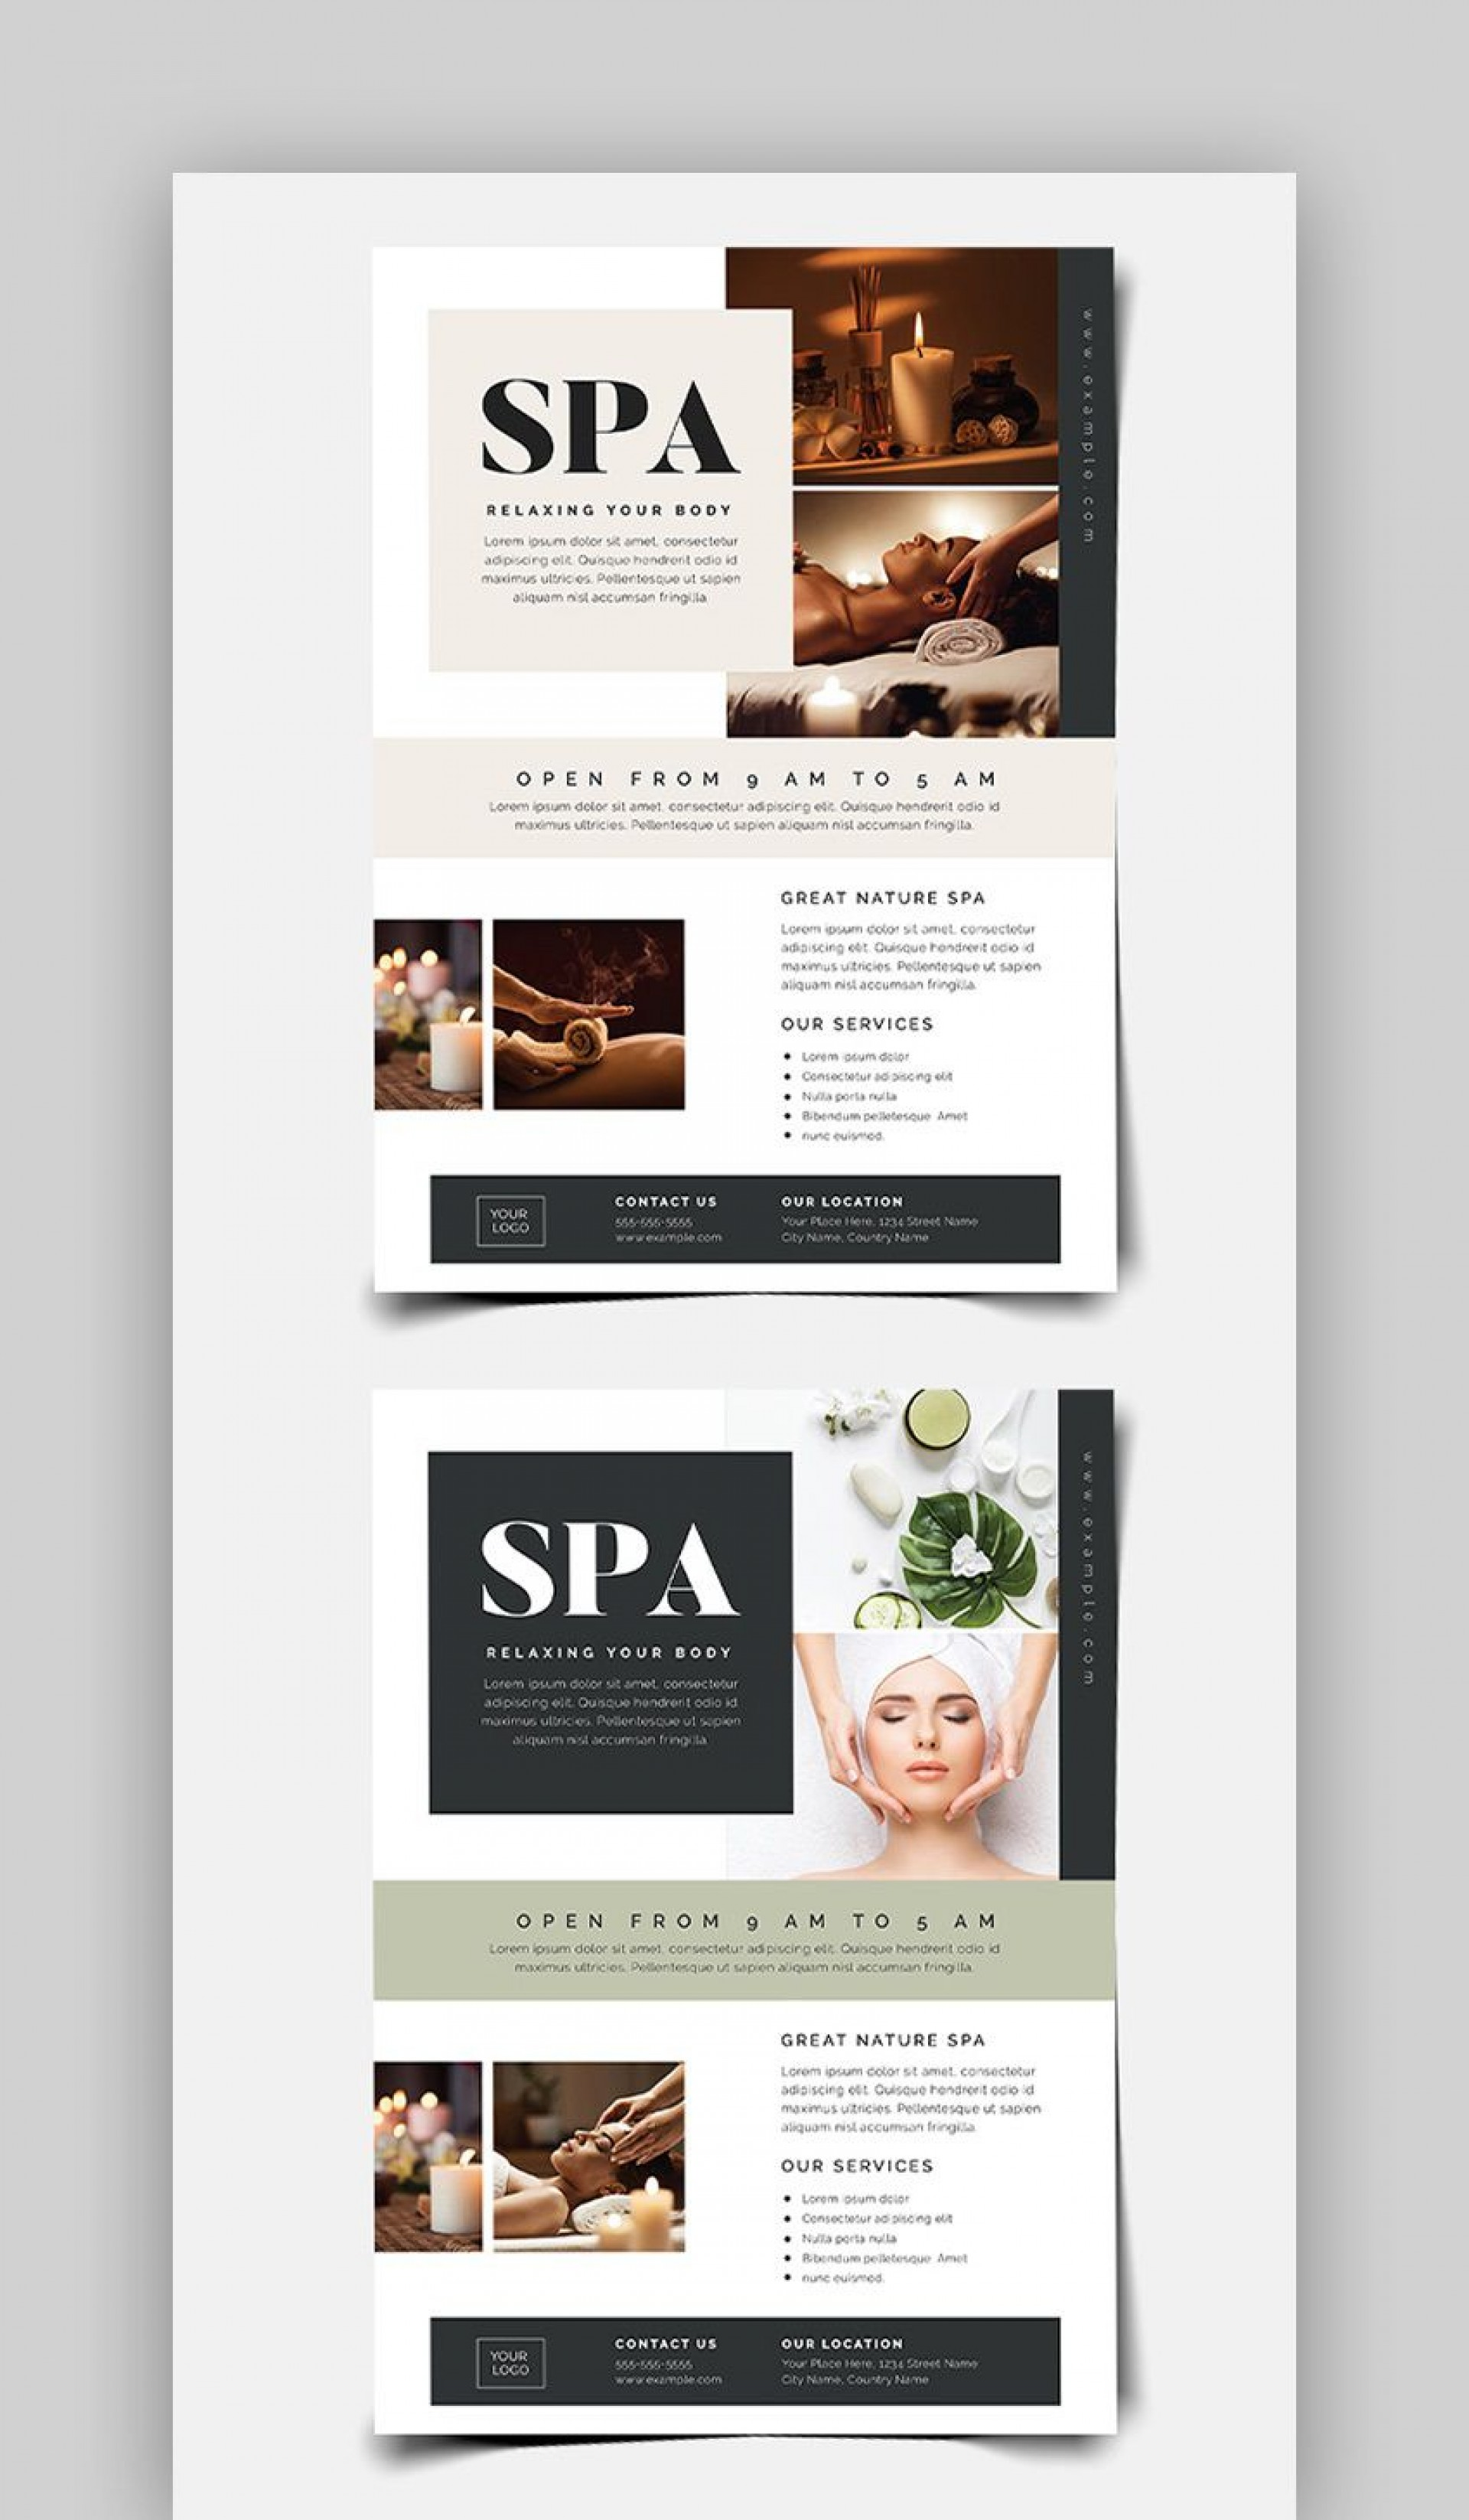 008 Surprising Photoshop Brochure Template Psd Free Download High Def 1920